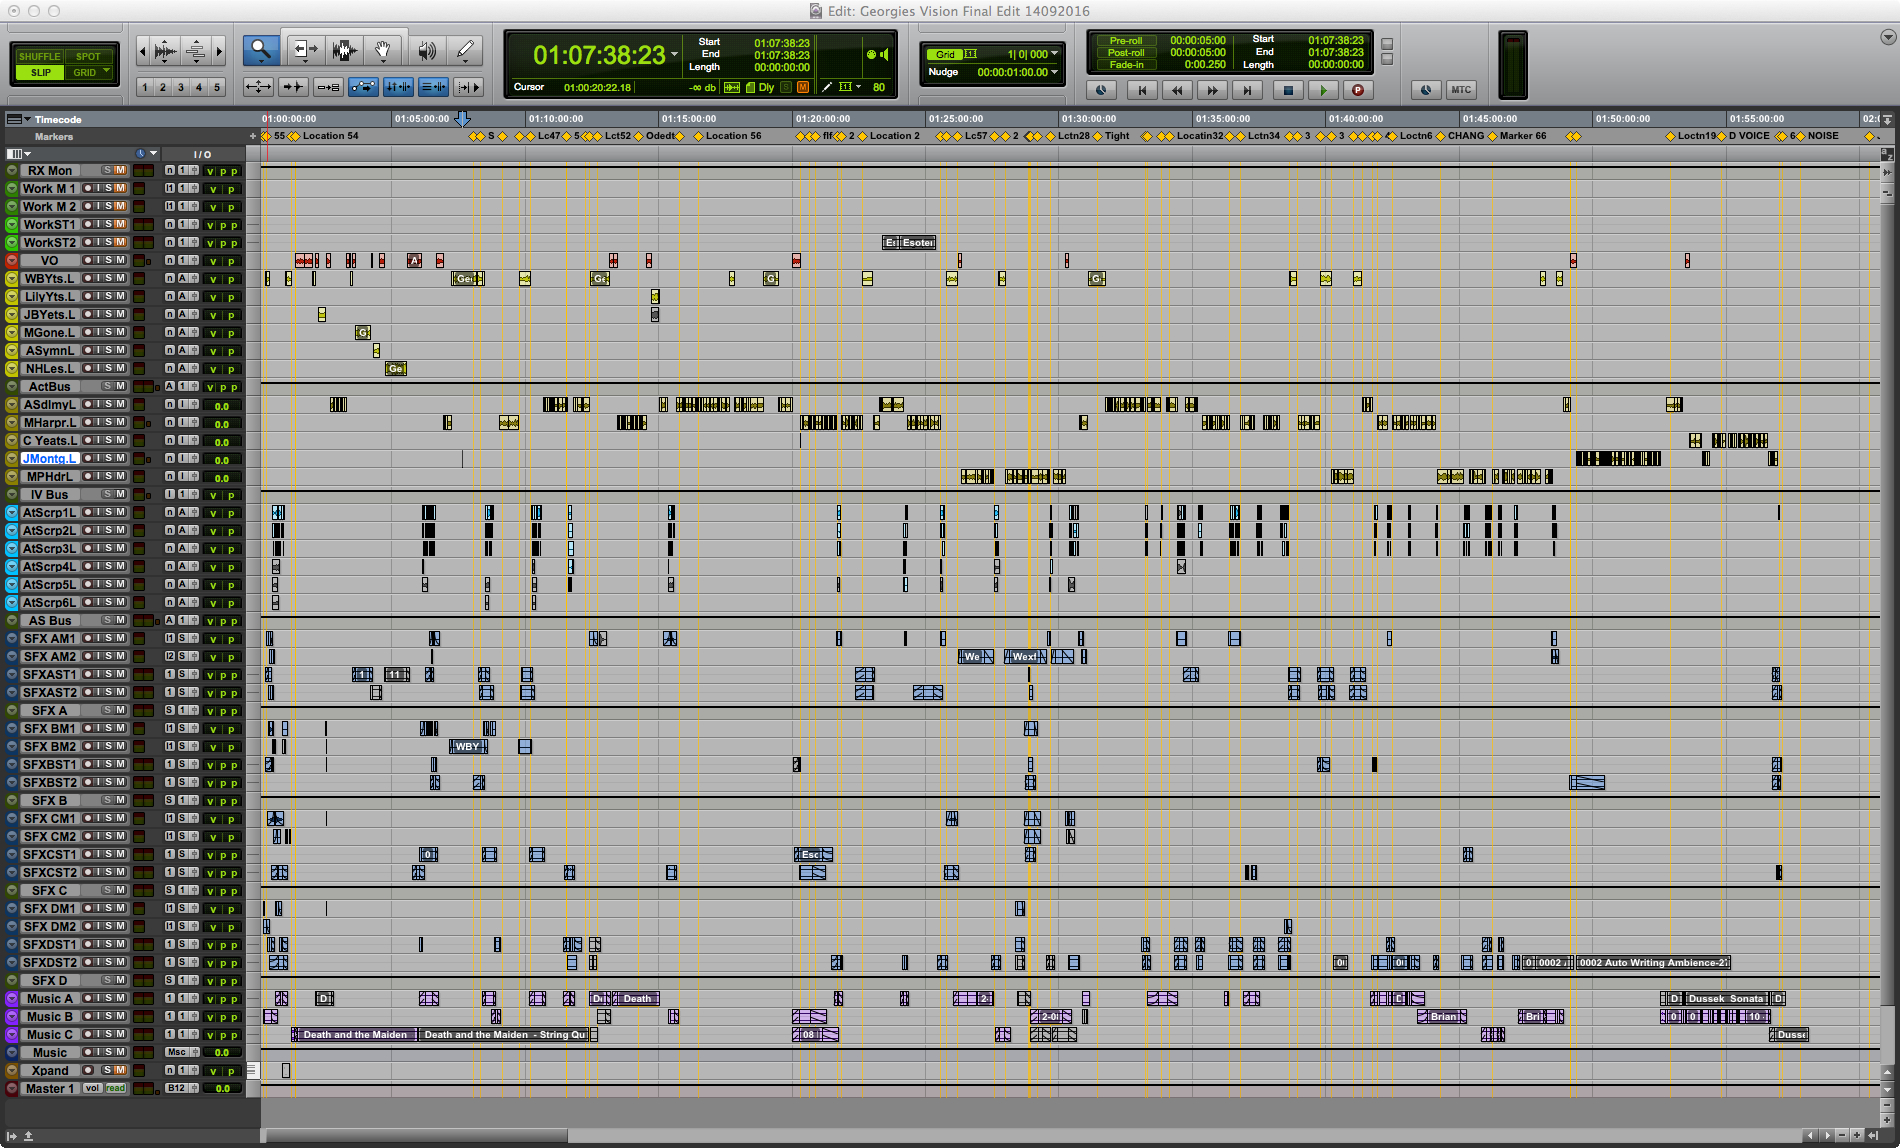 Pro Tools Edit Window for 'Georgie's Vision'